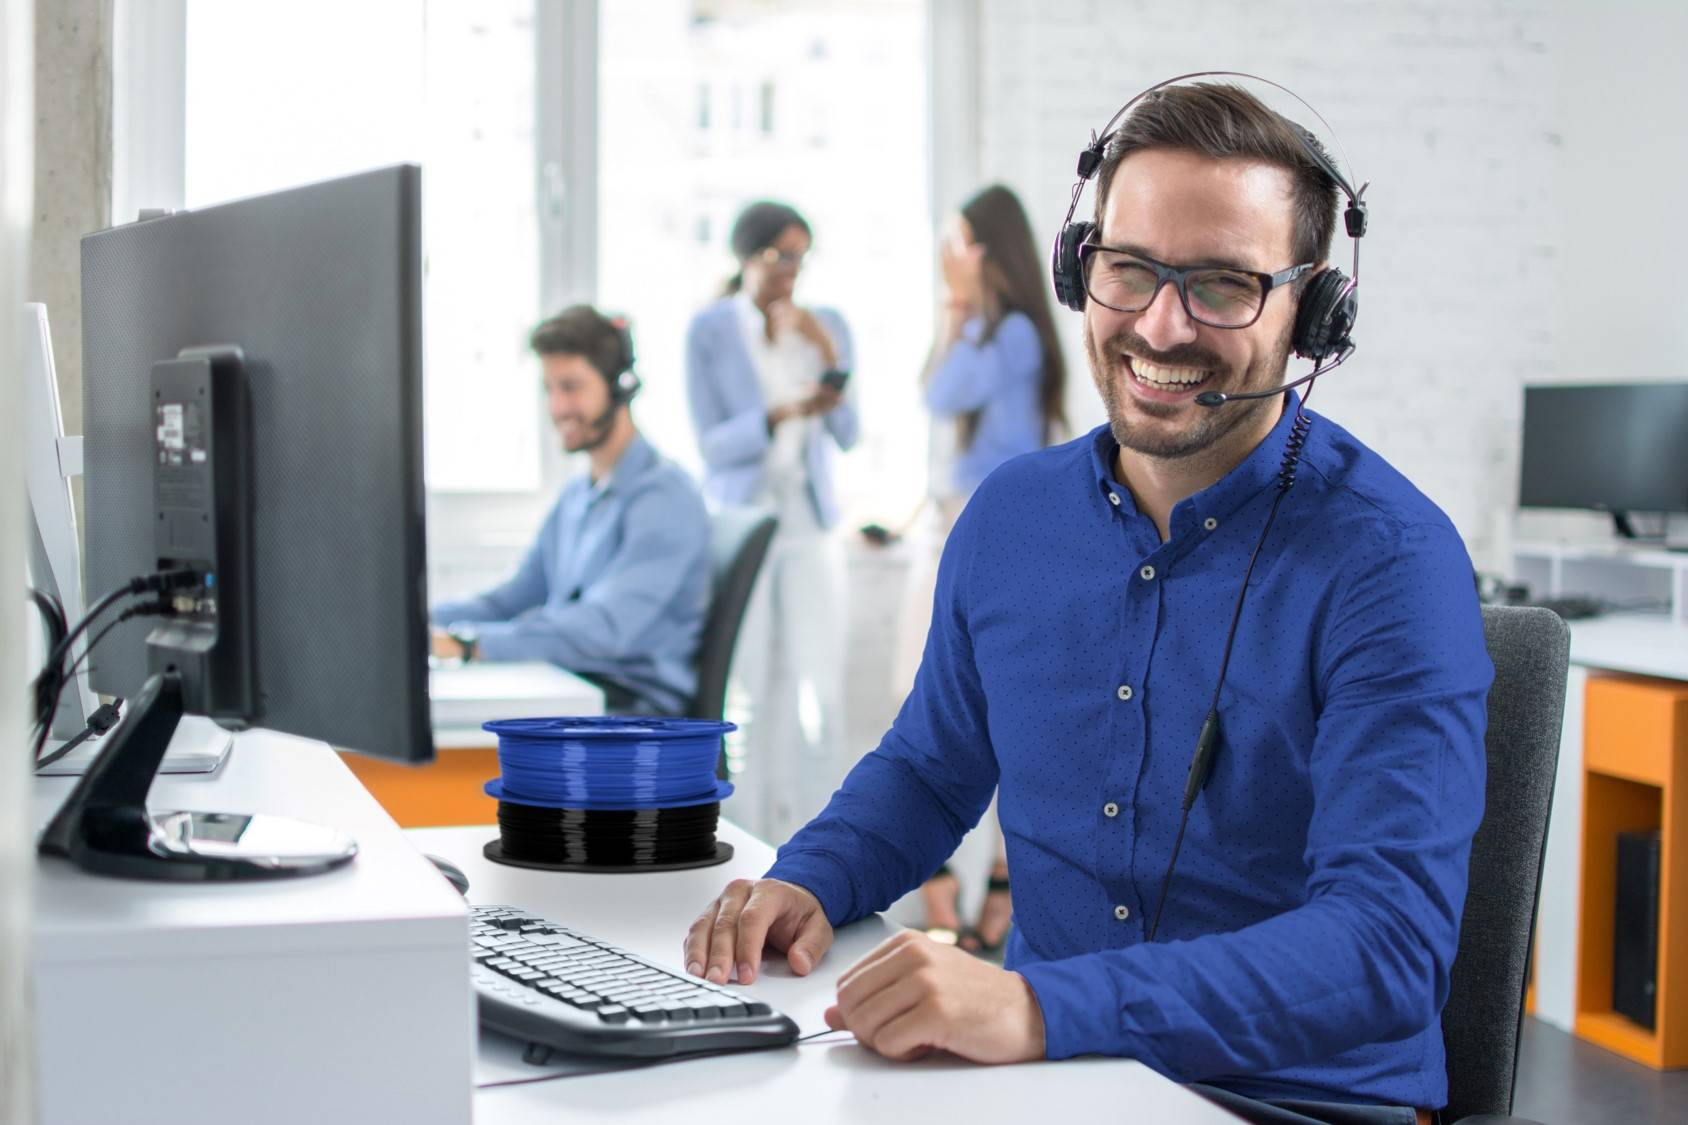 Image of Dremel DigiLab customer service representatives on a call with co-workers in background